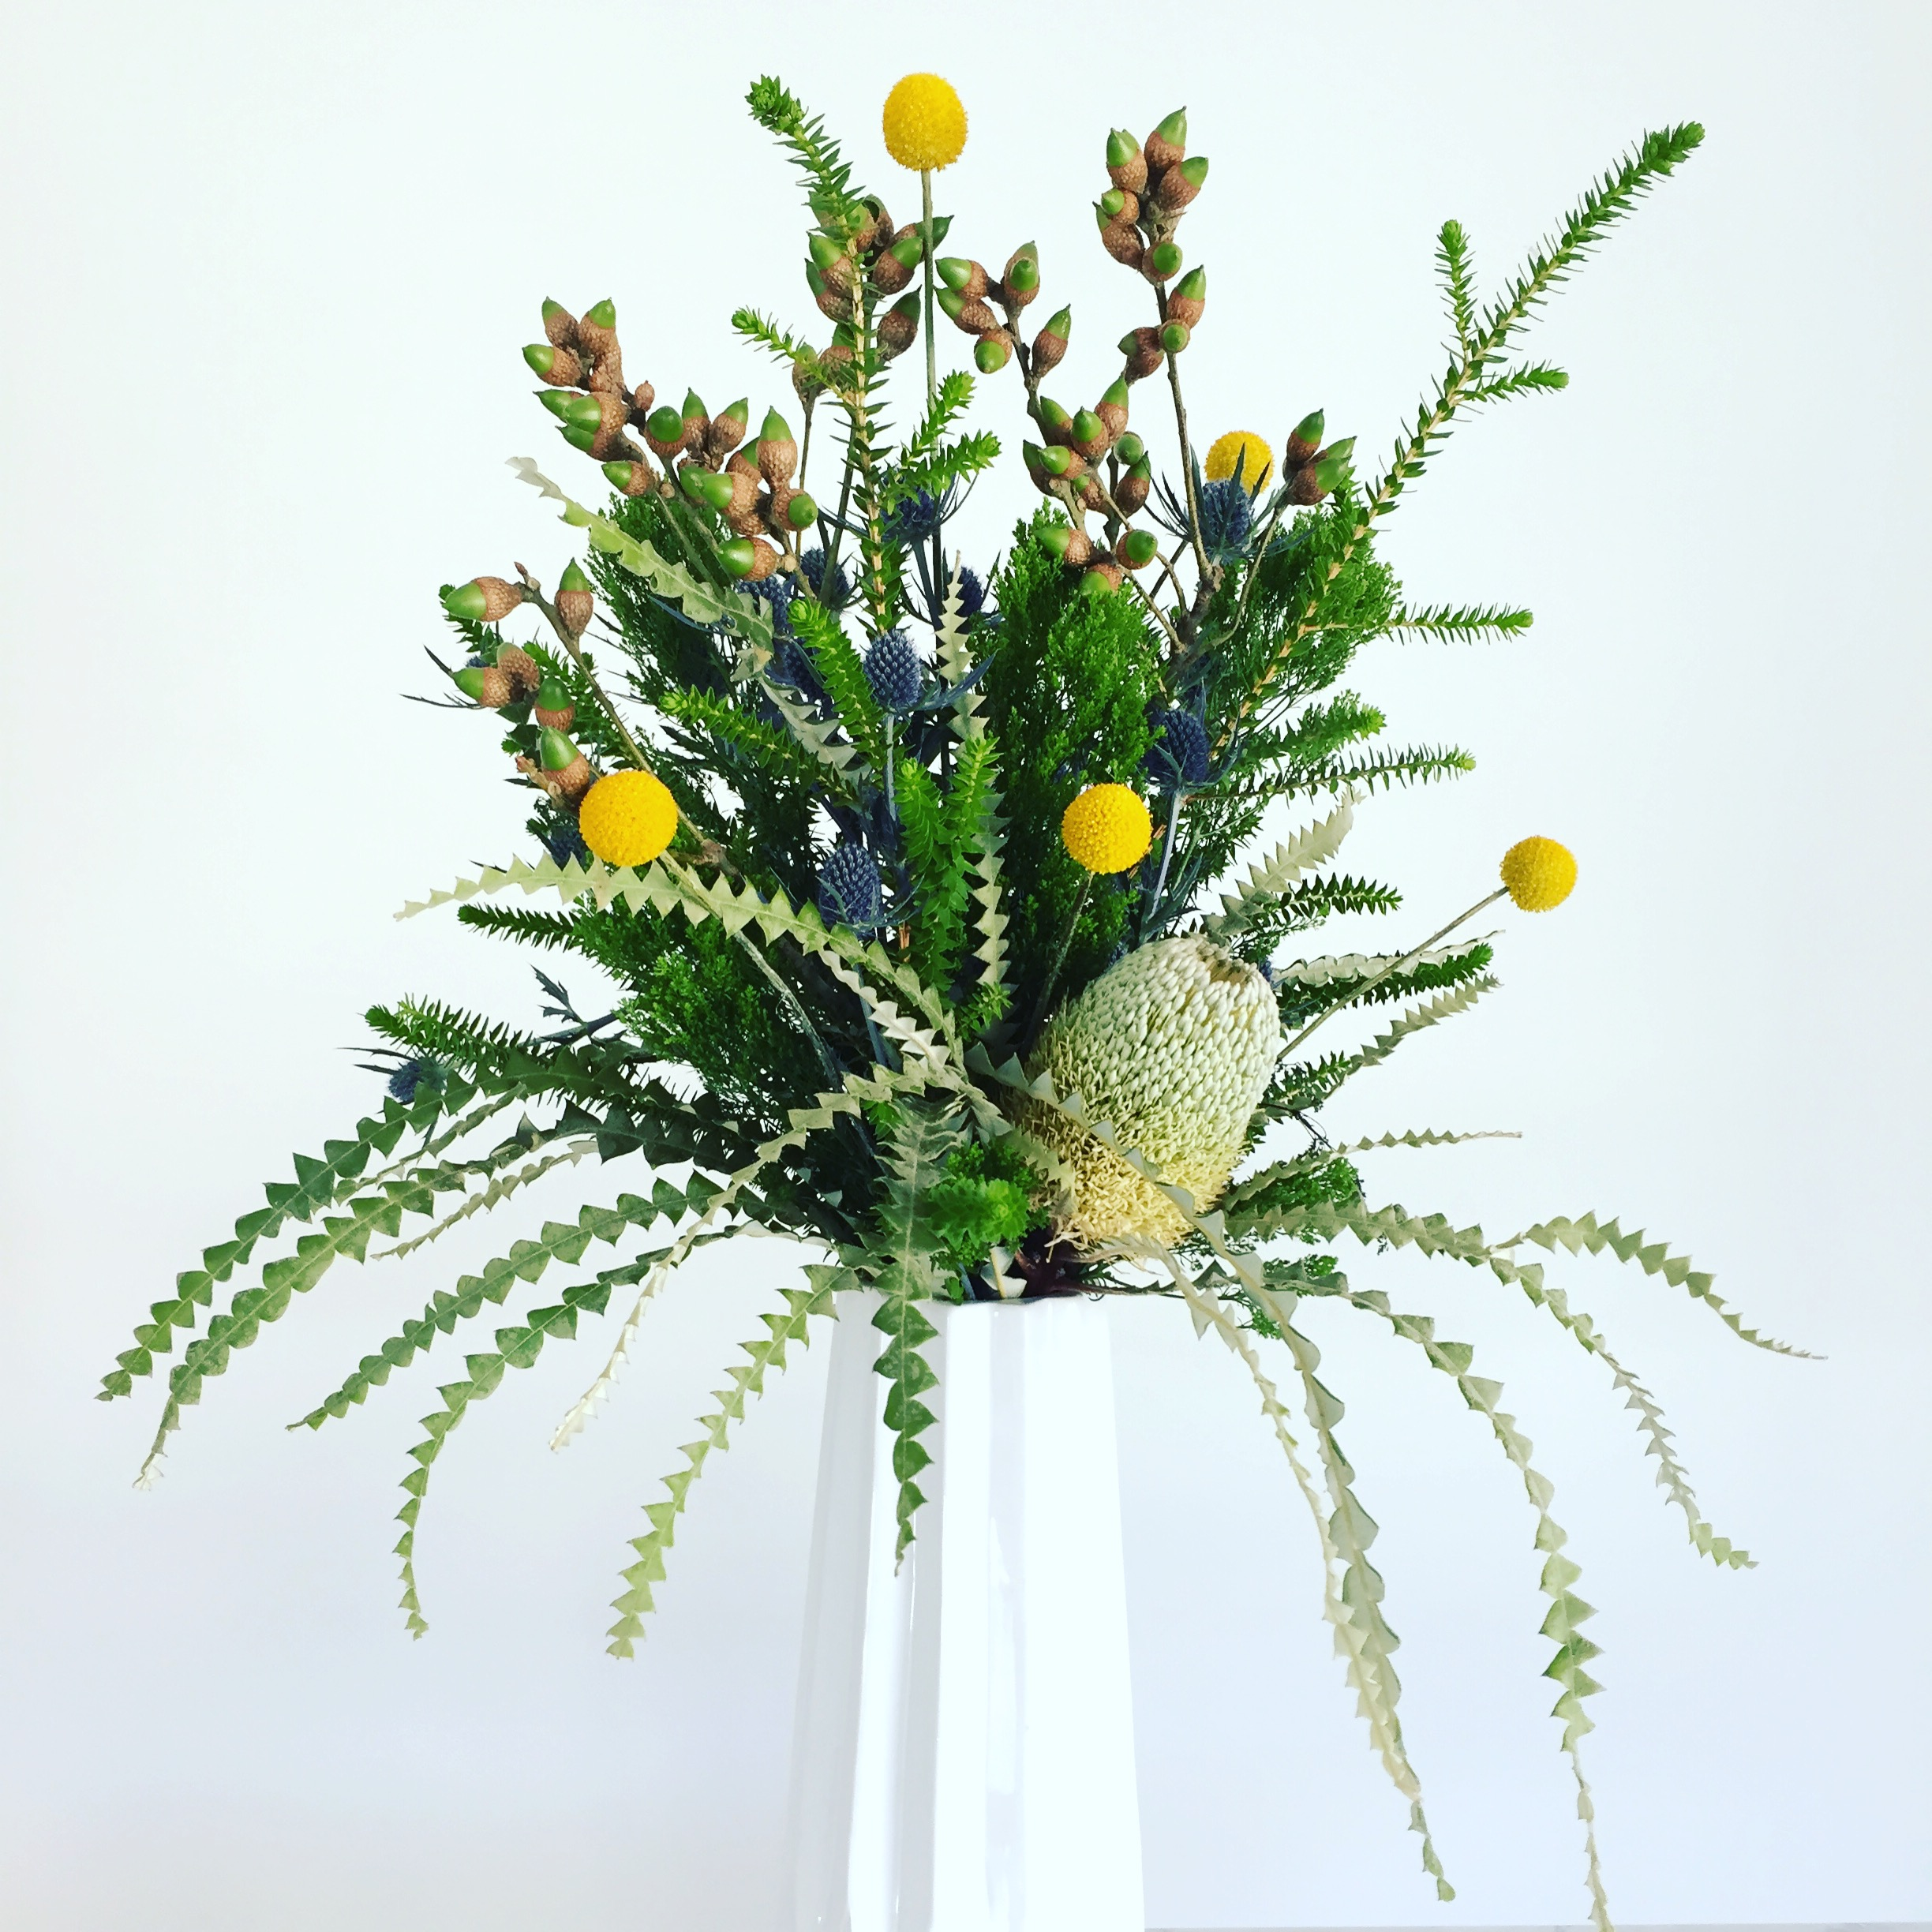 The Banksia